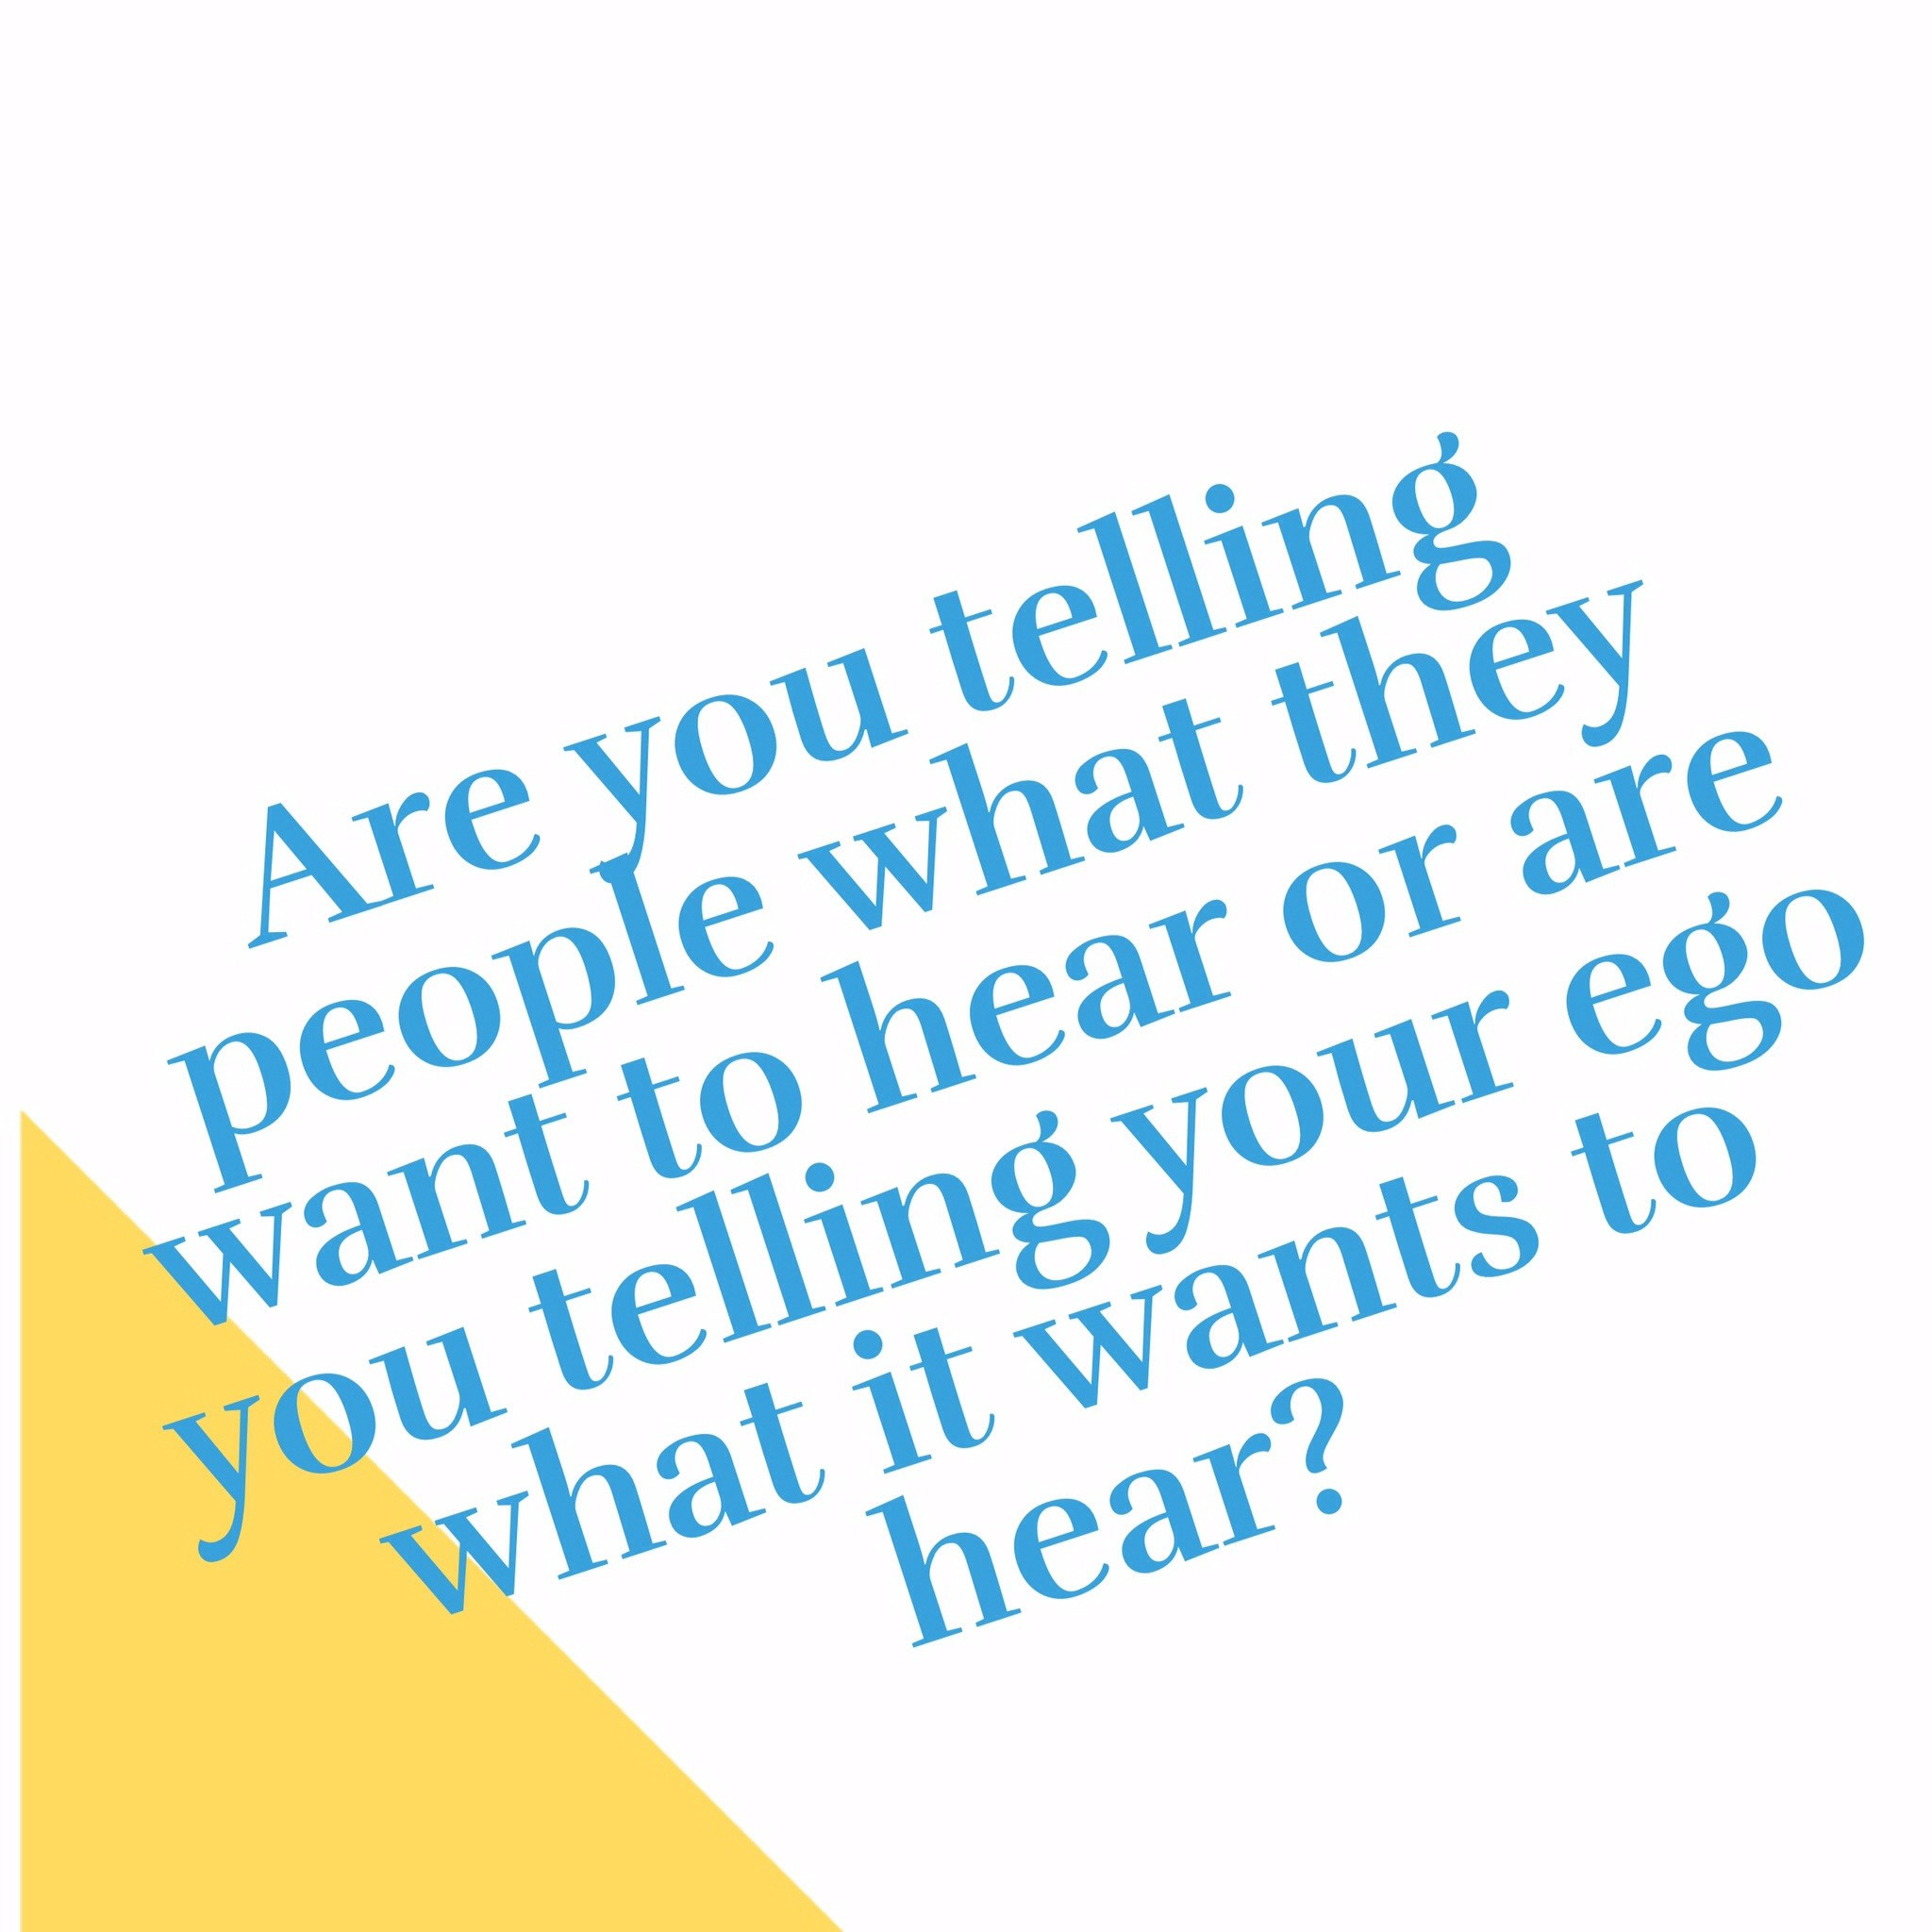 Telling people what we think they want to hear leads to resentment on all sides